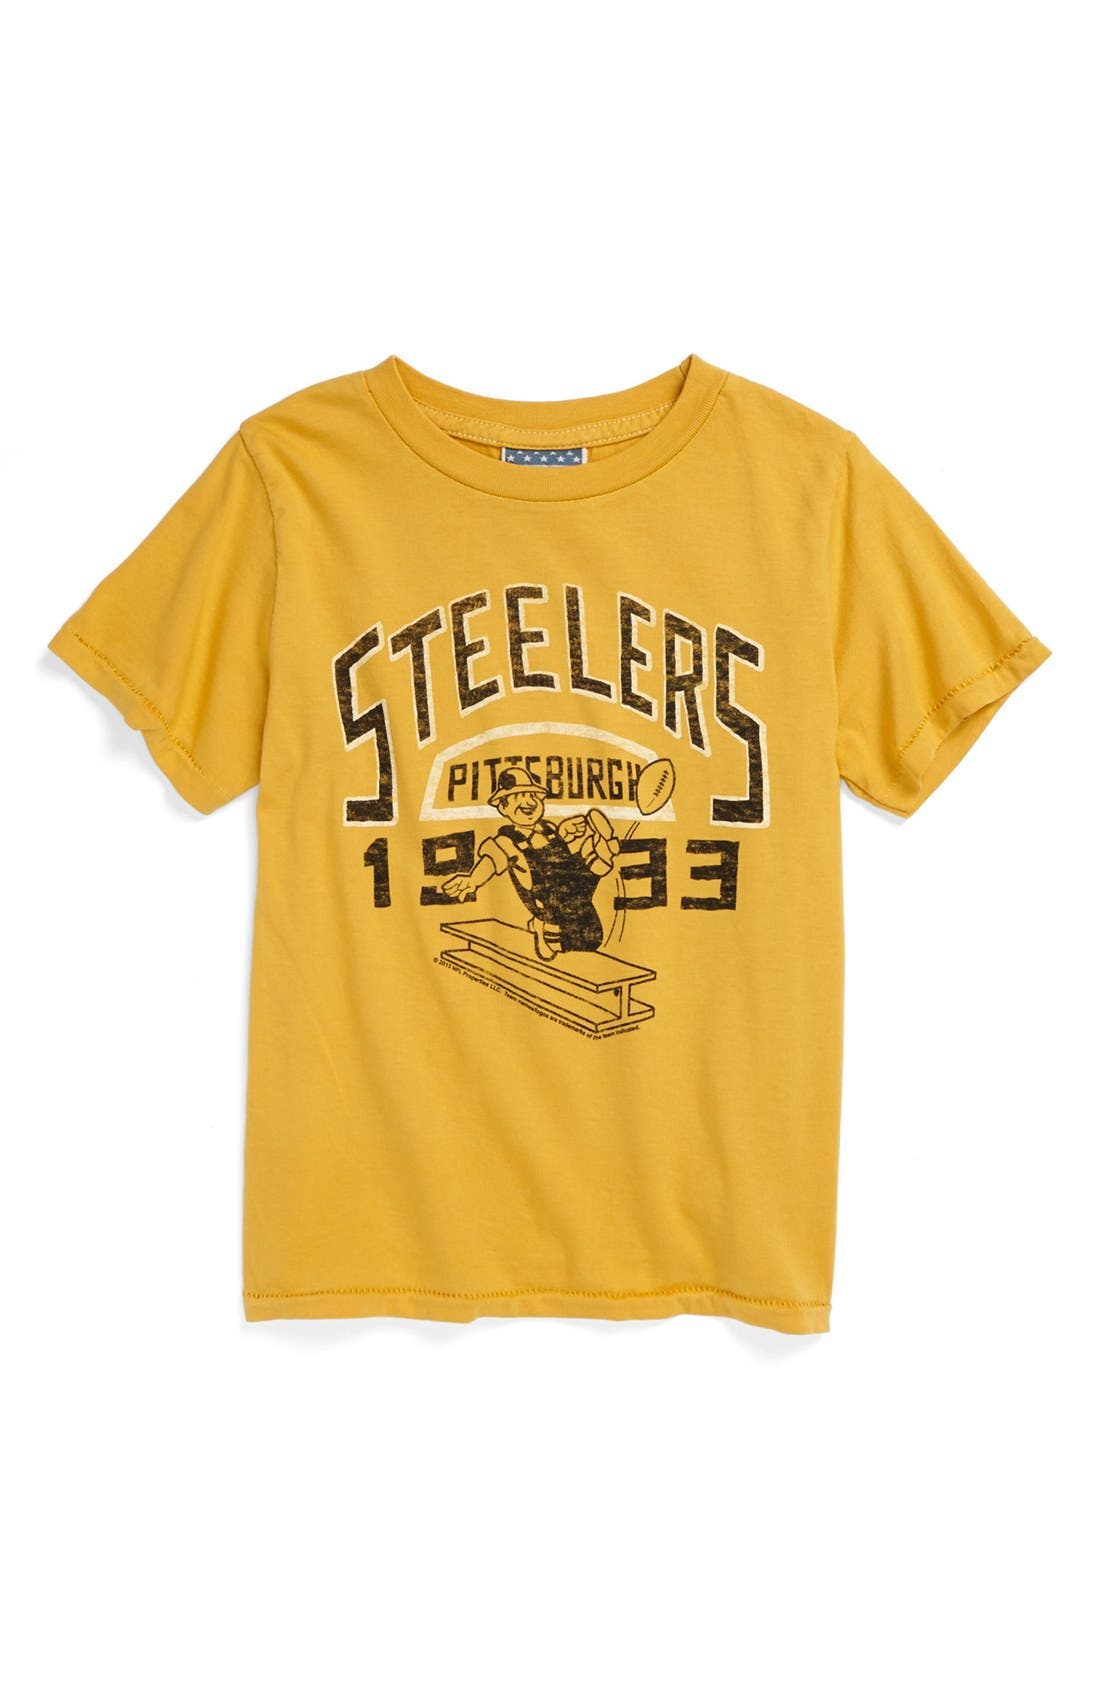 Alternate Image 1 Selected - Junk Food 'Pittsburgh Steelers' T-Shirt (Toddler Boys)